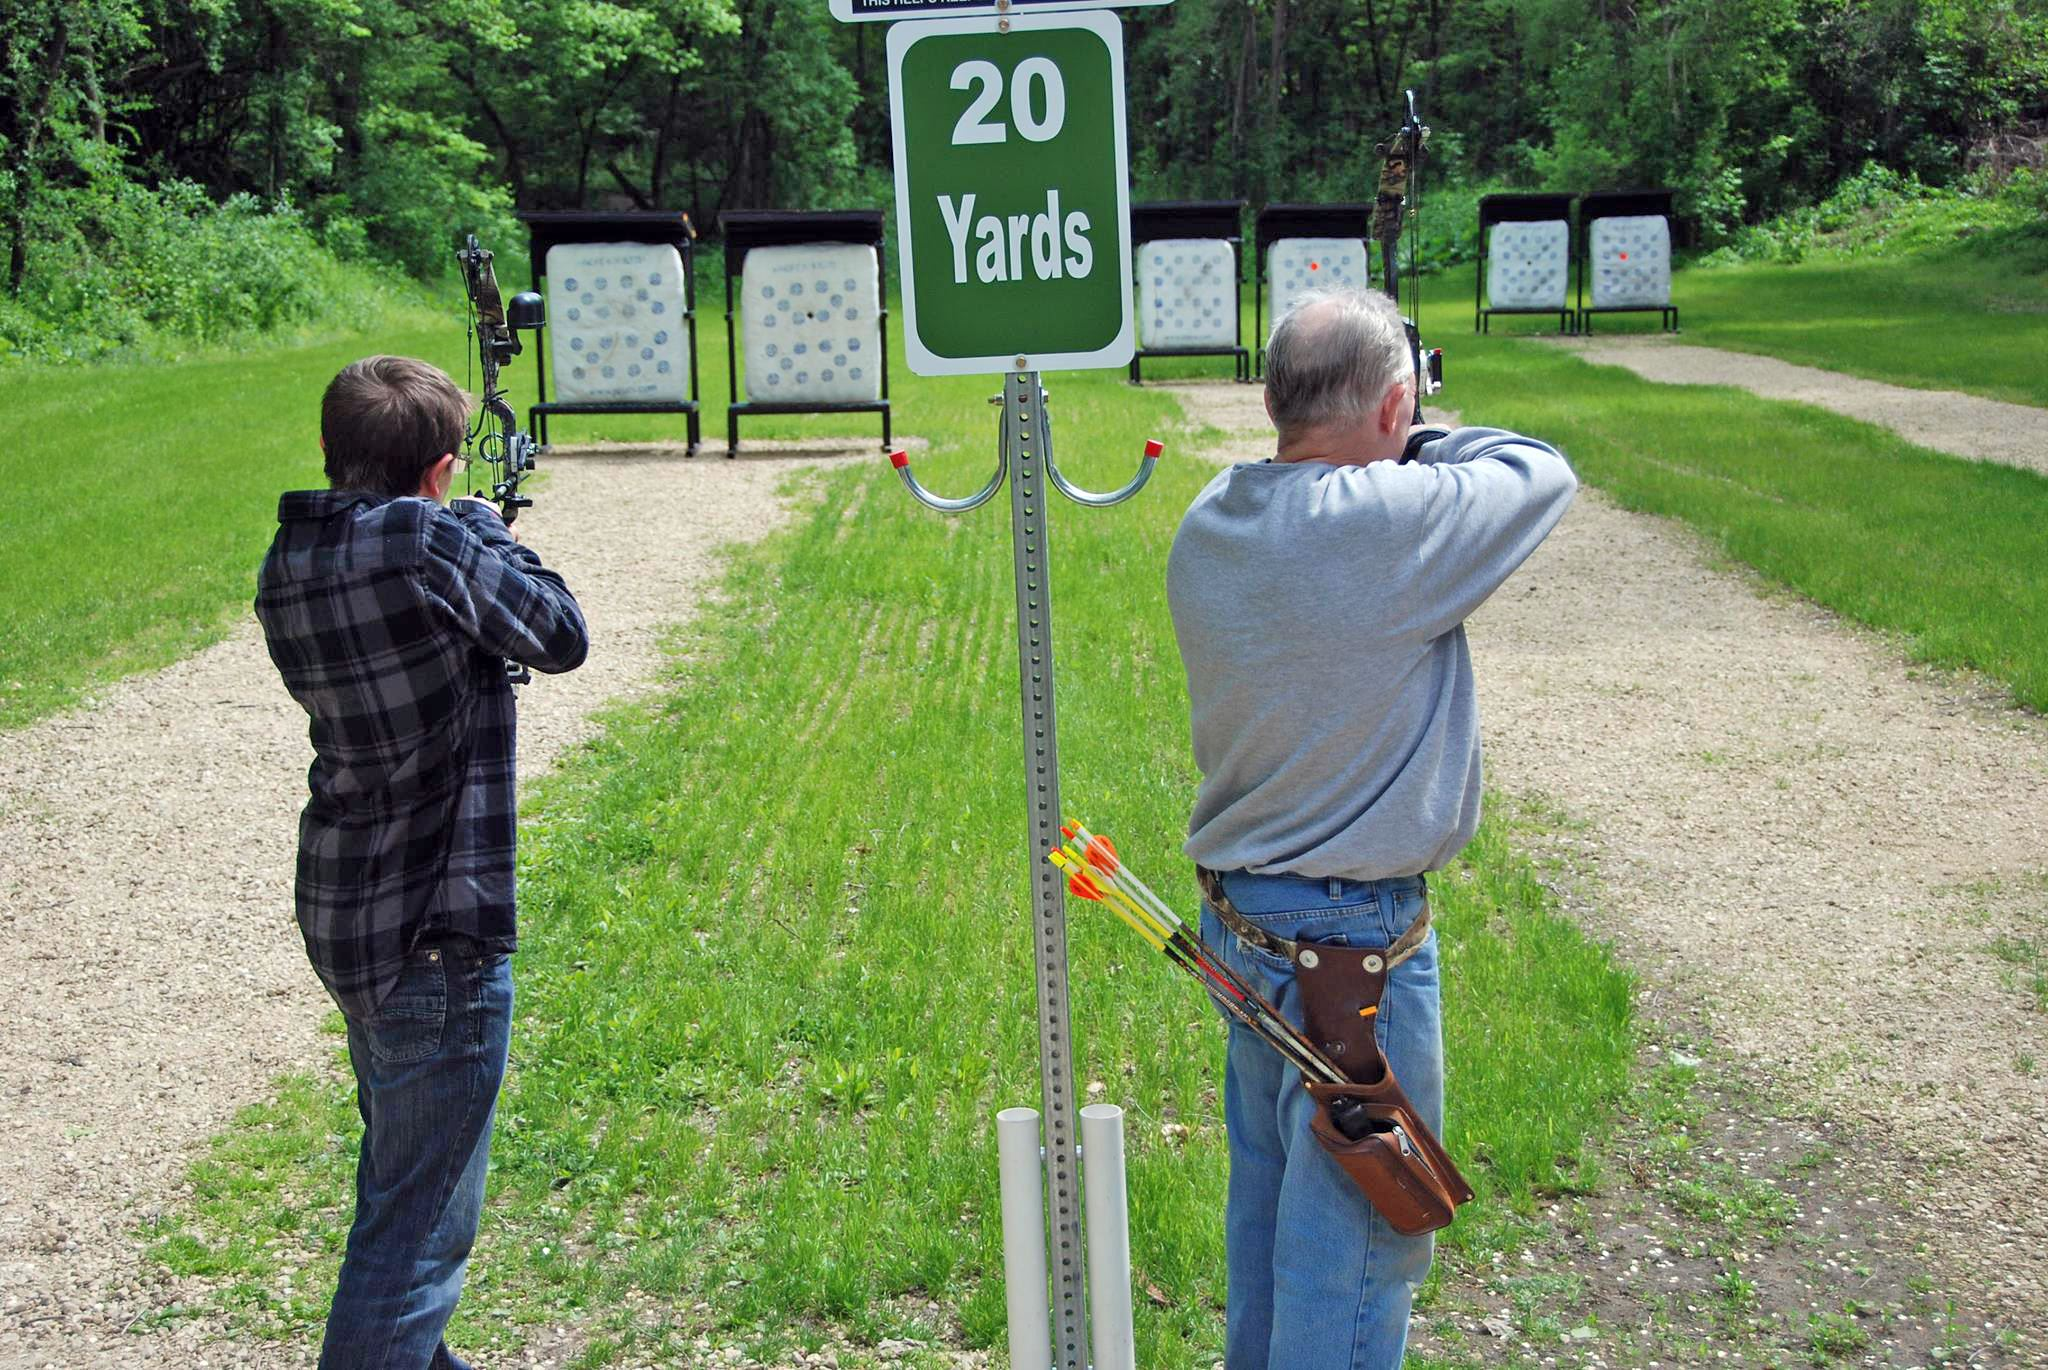 South St. Paul Archery Range, two people aiming at targets 20 foot away.